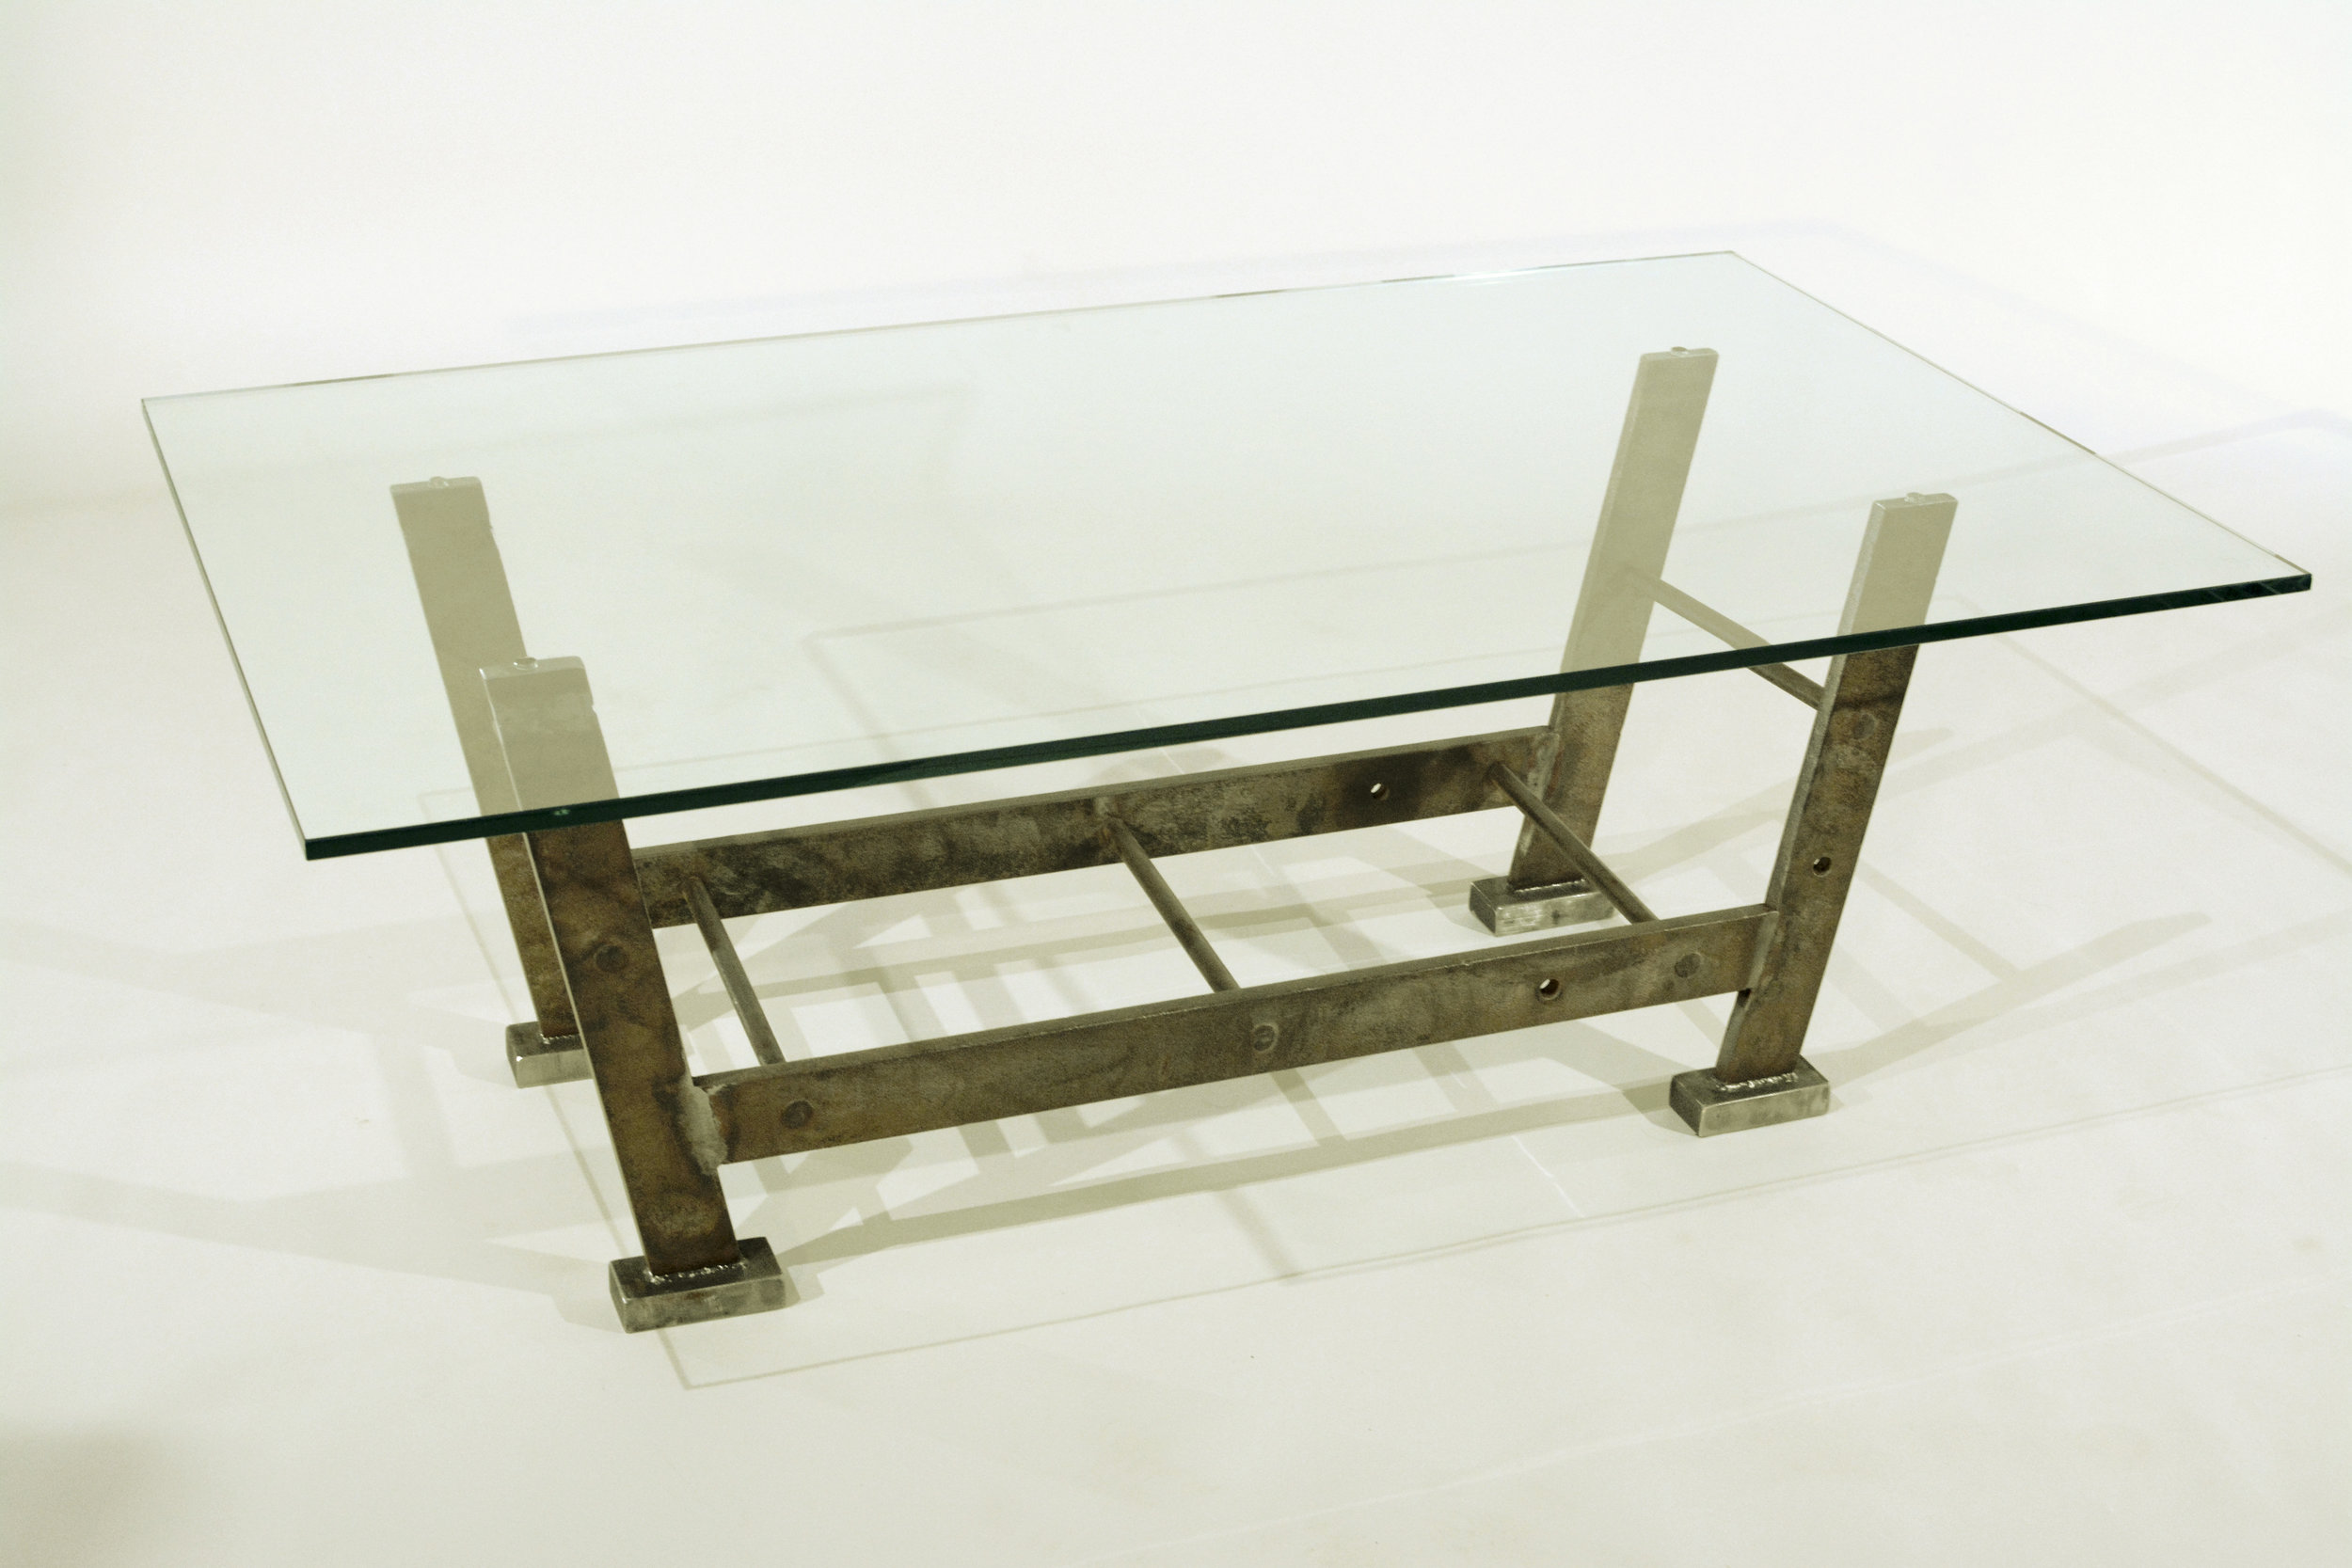 Industrial coffee table - La Scala b